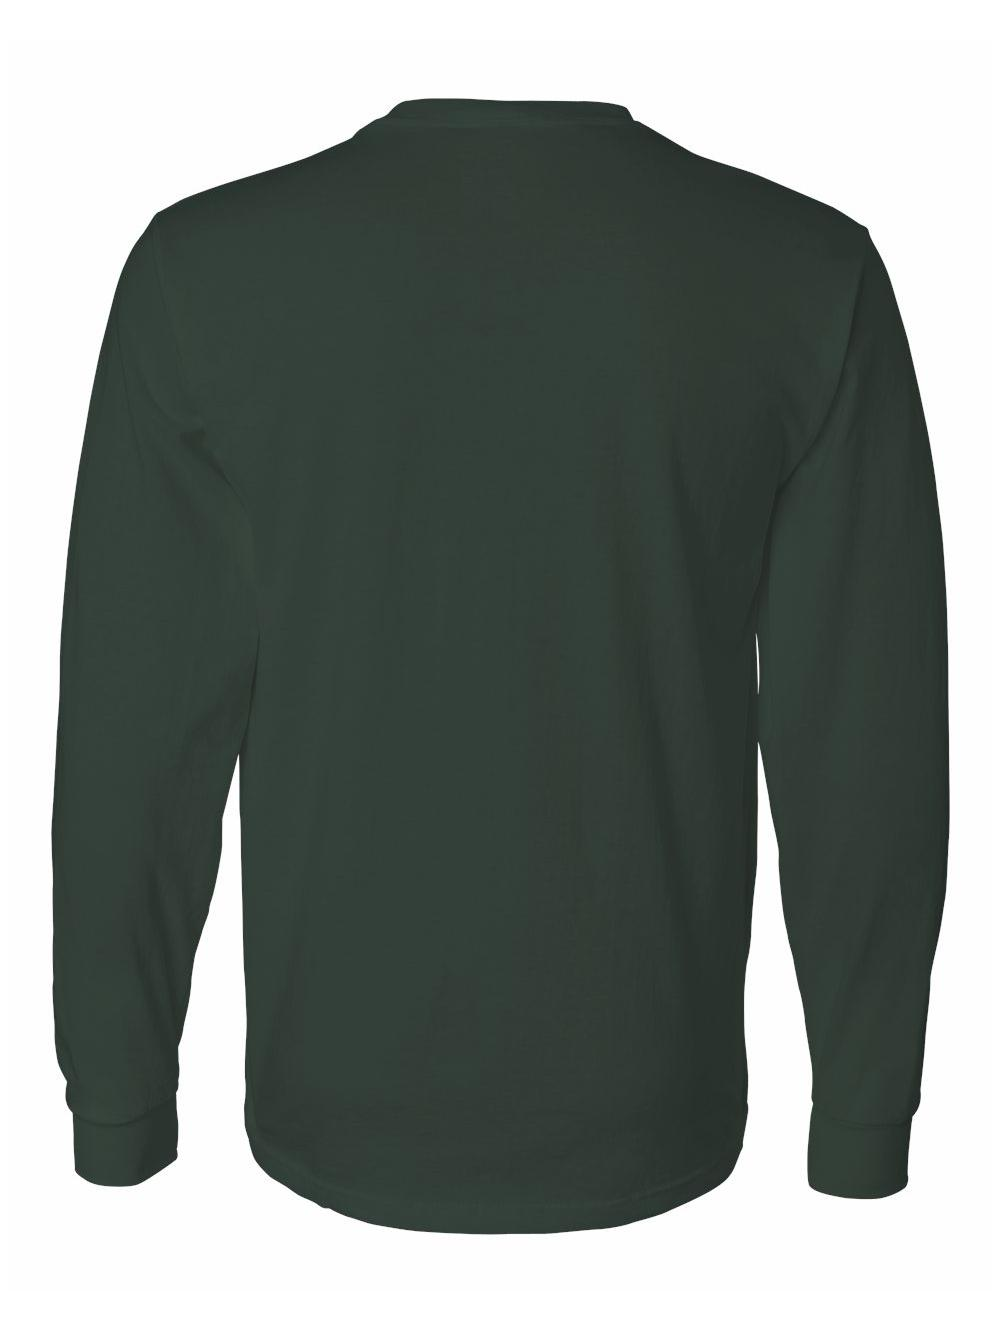 Fruit-of-the-Loom-HD-Cotton-Long-Sleeve-T-Shirt-4930R thumbnail 34